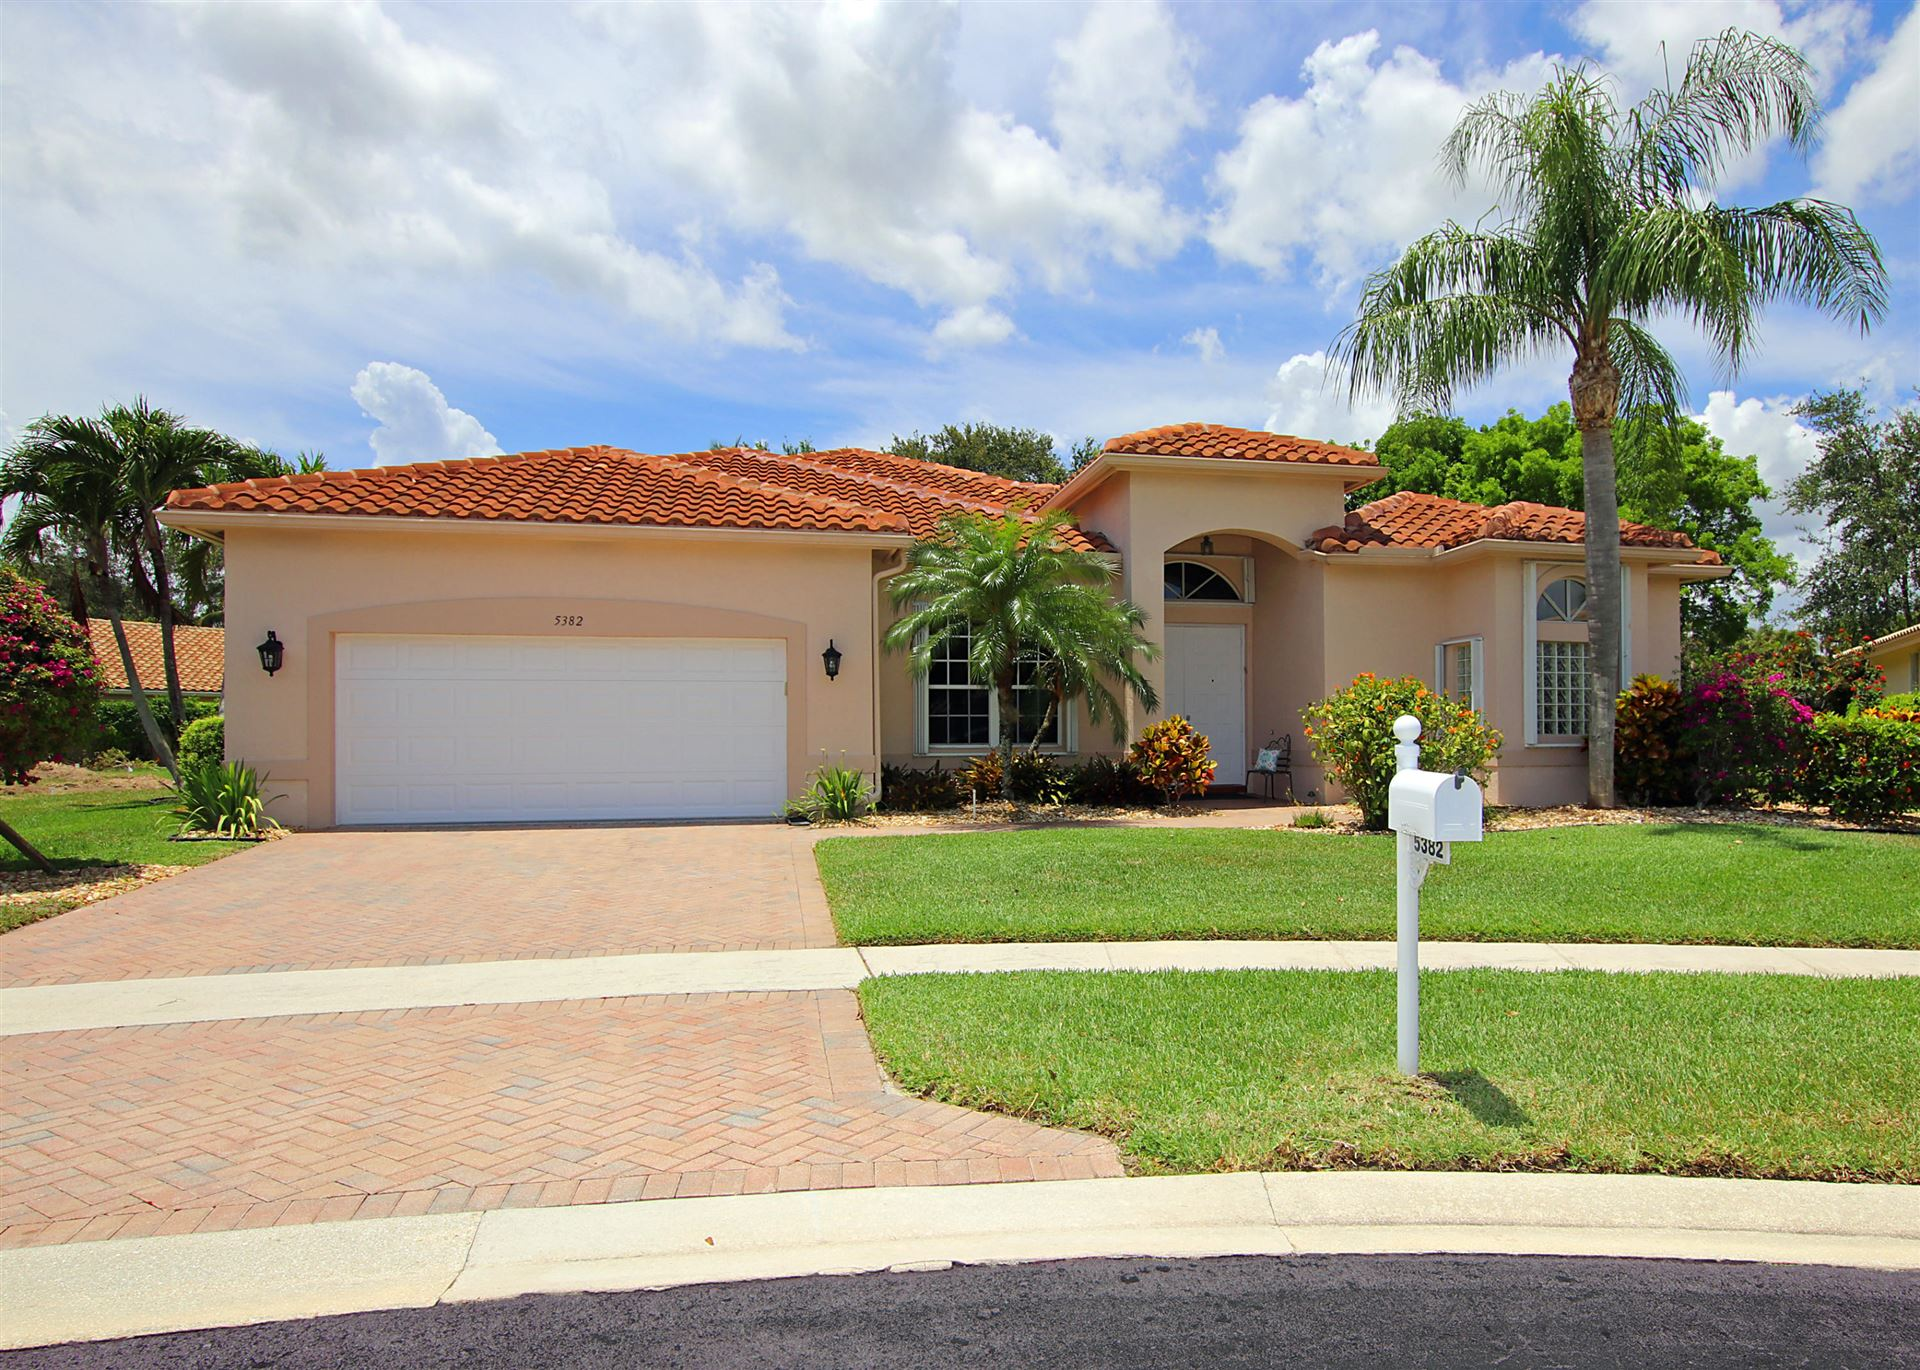 5382 Landon Circle, Boynton Beach, FL 33437 - MLS#: RX-10715625